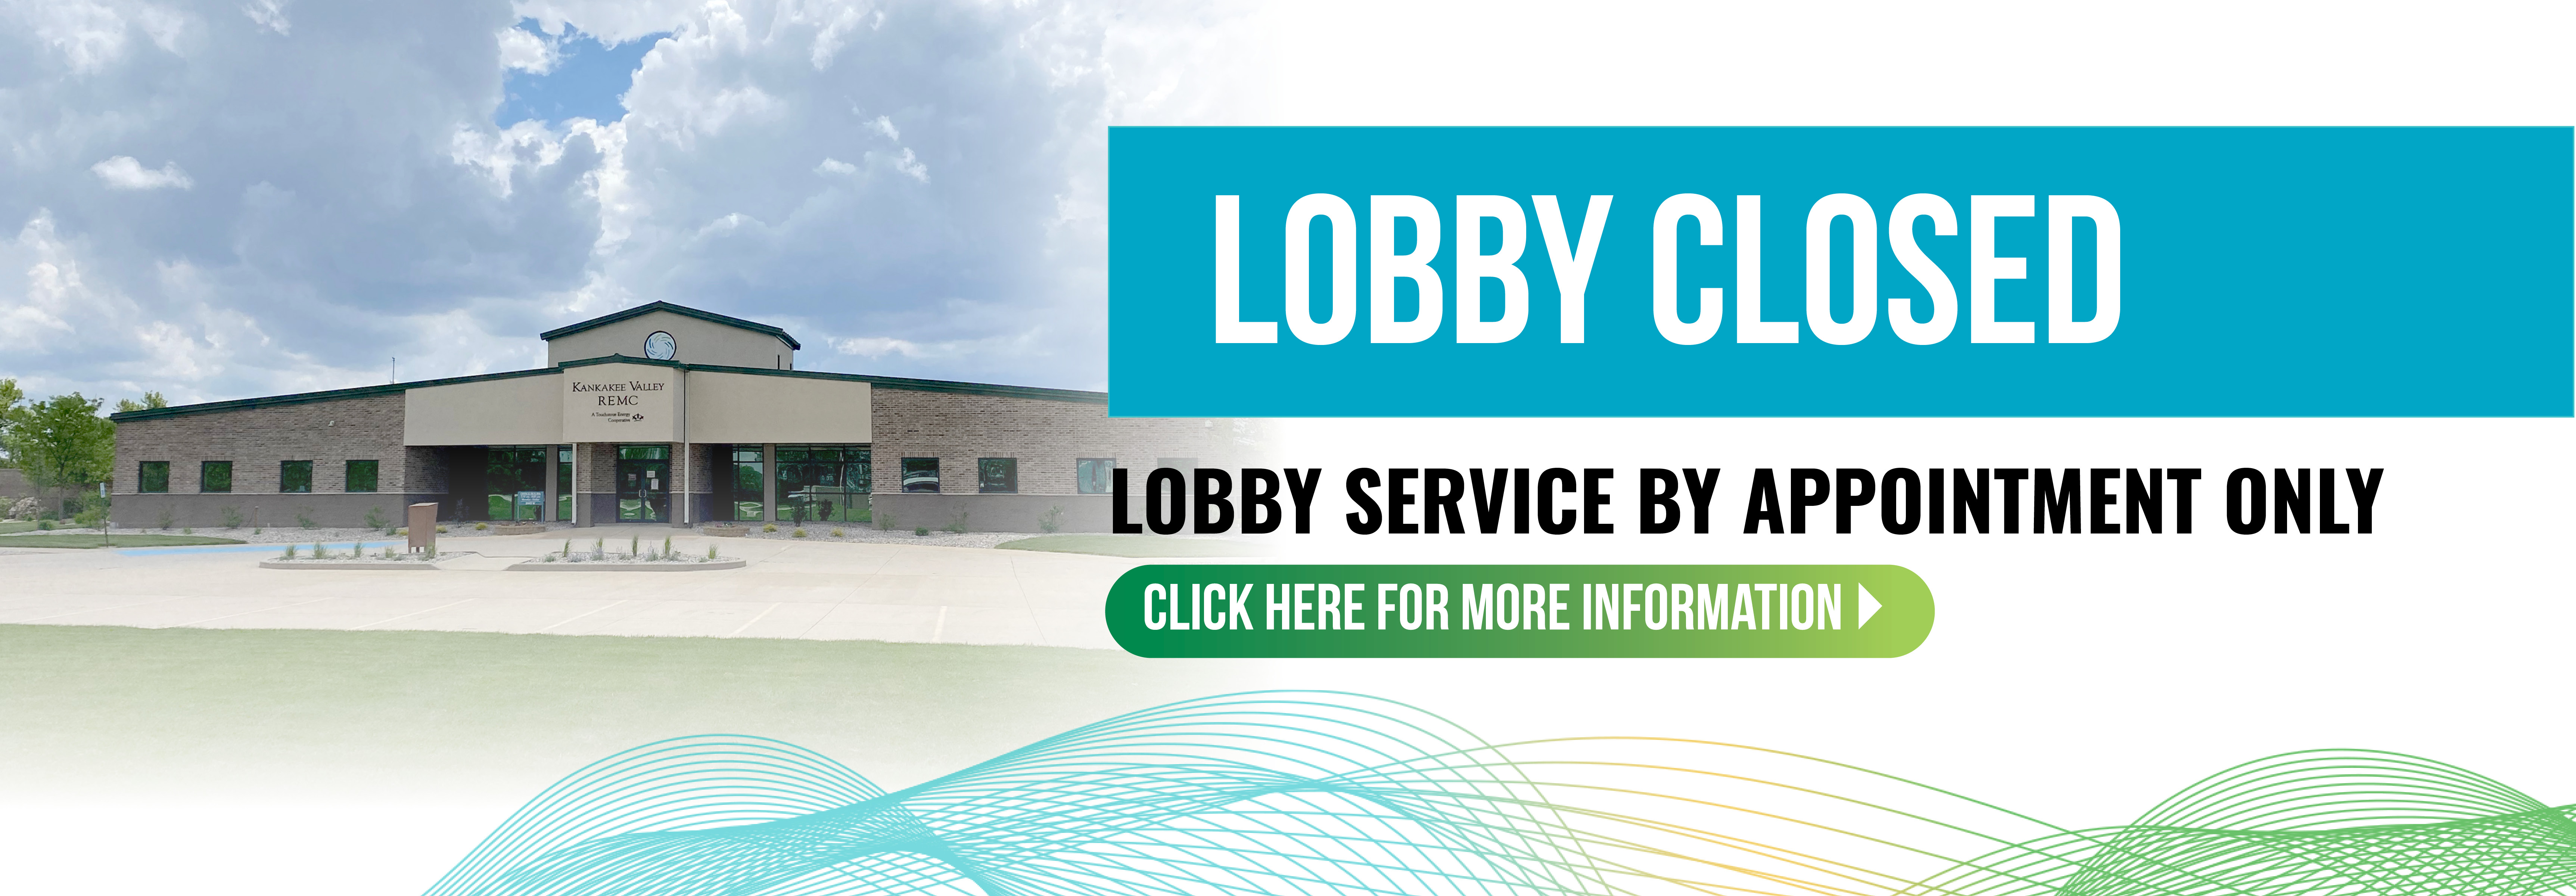 LobbyClosed_banner